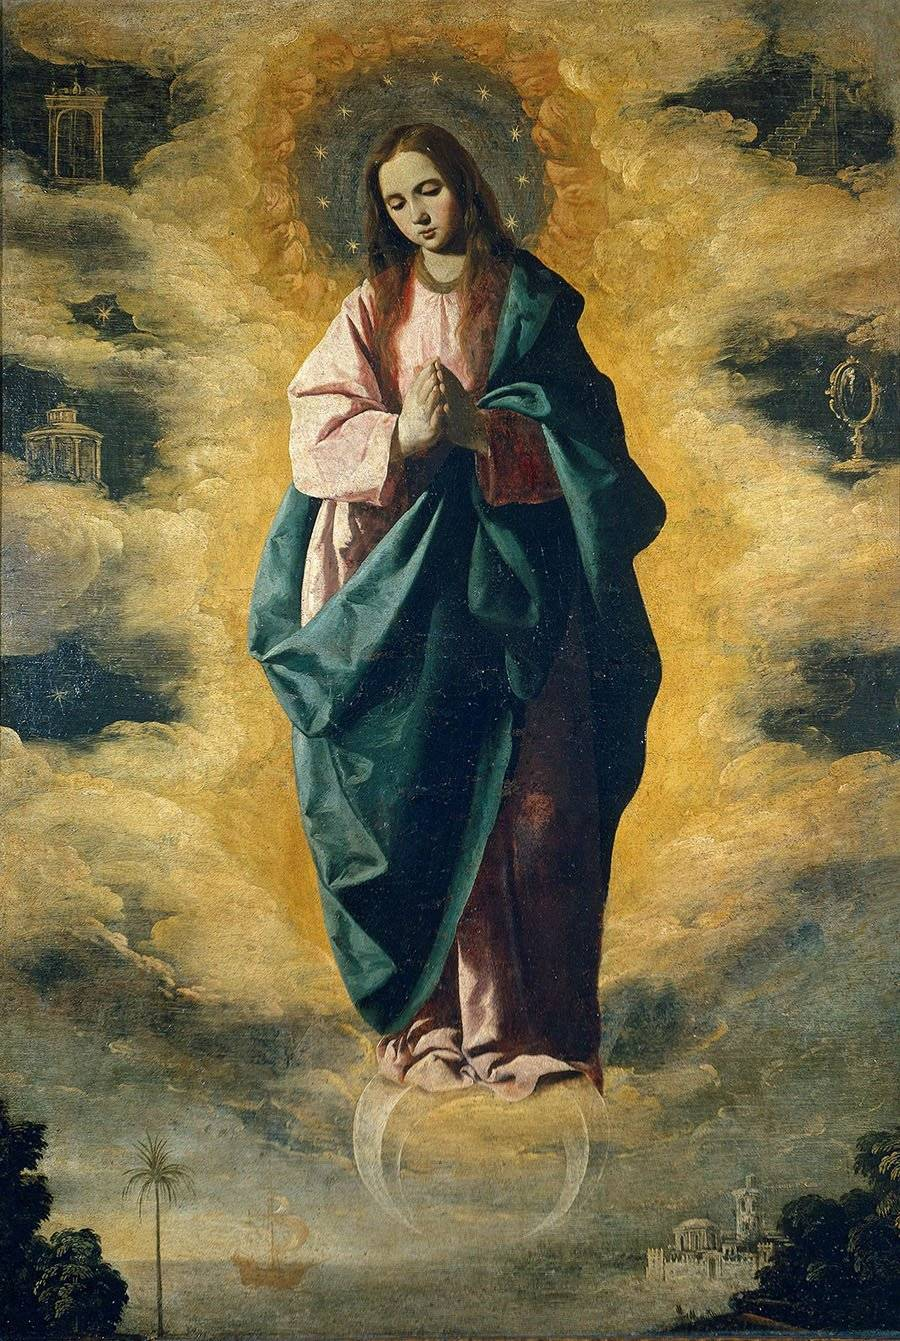 Francisco de Zurbarán, Immaculate Conception. צילום: ויקיפדיה